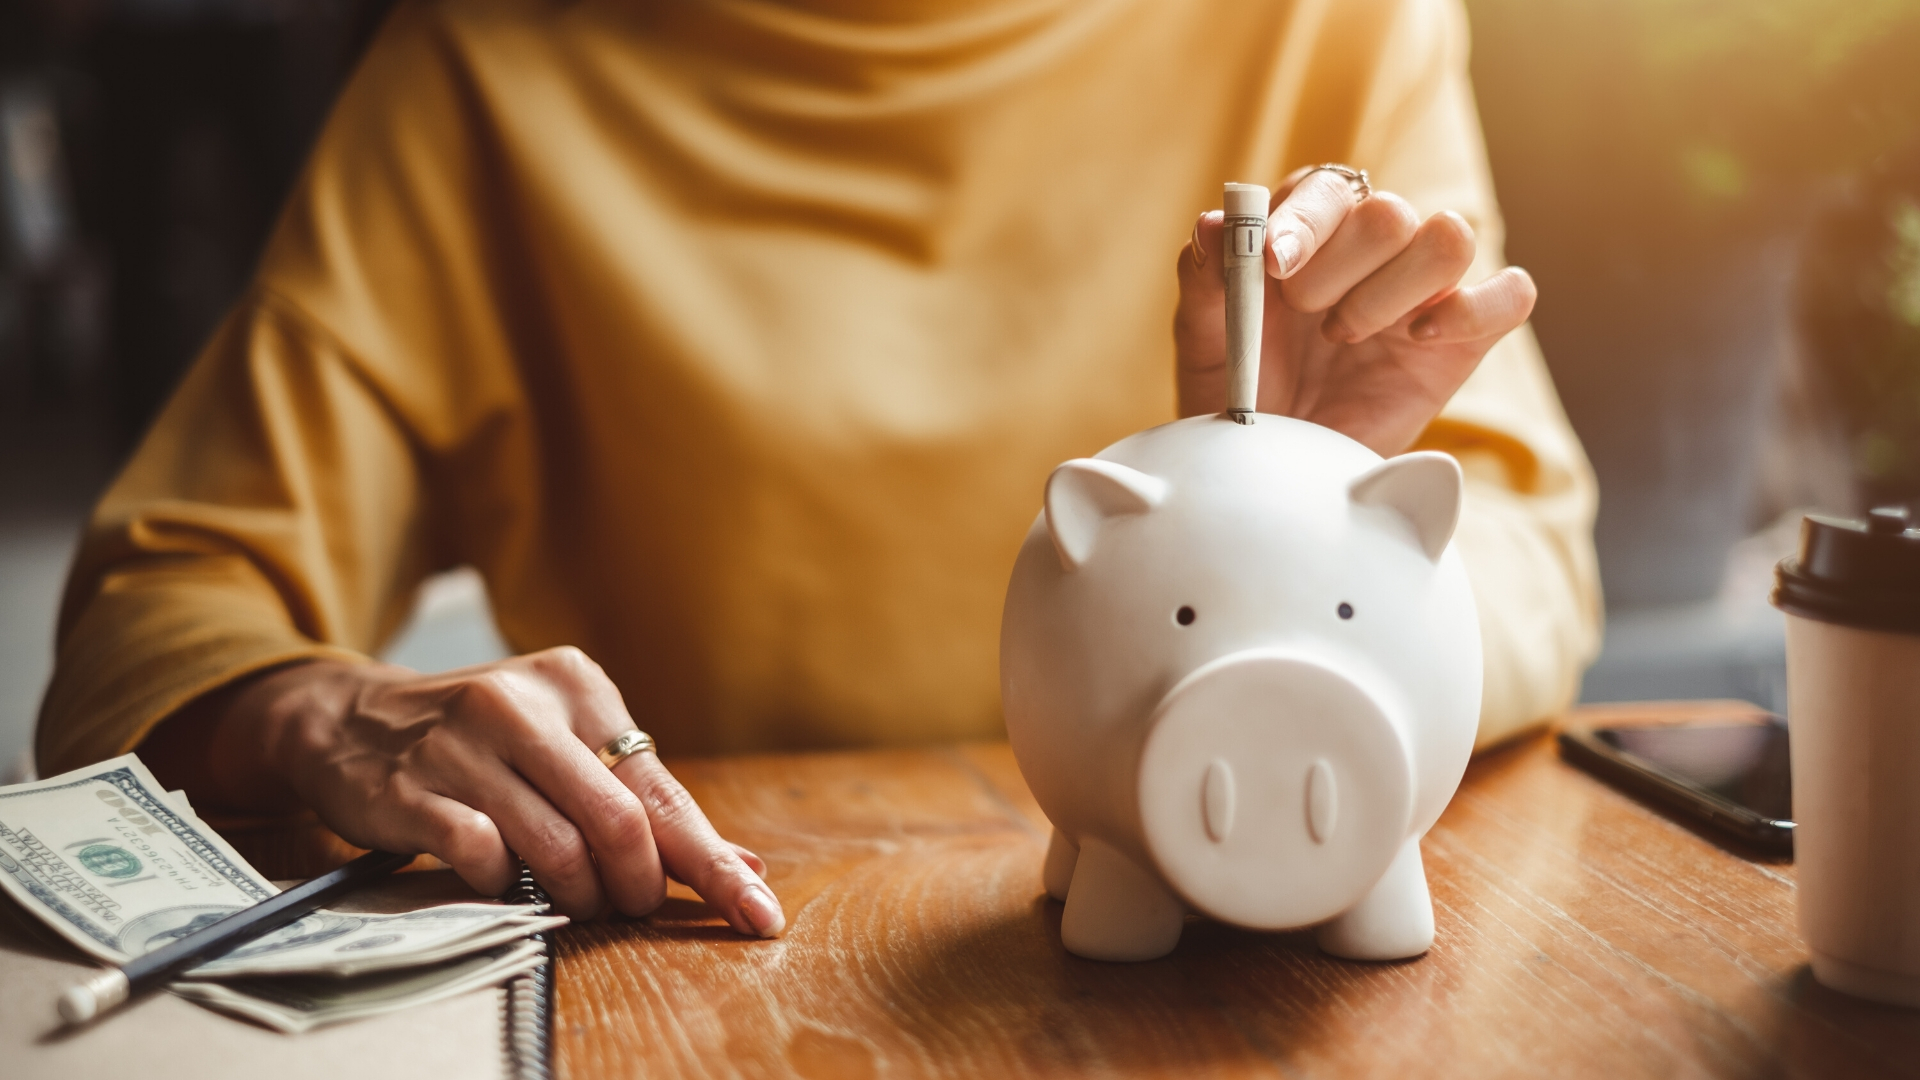 4 Must Dos to Cut Back on Business Expenses and Thrive During COVID-19